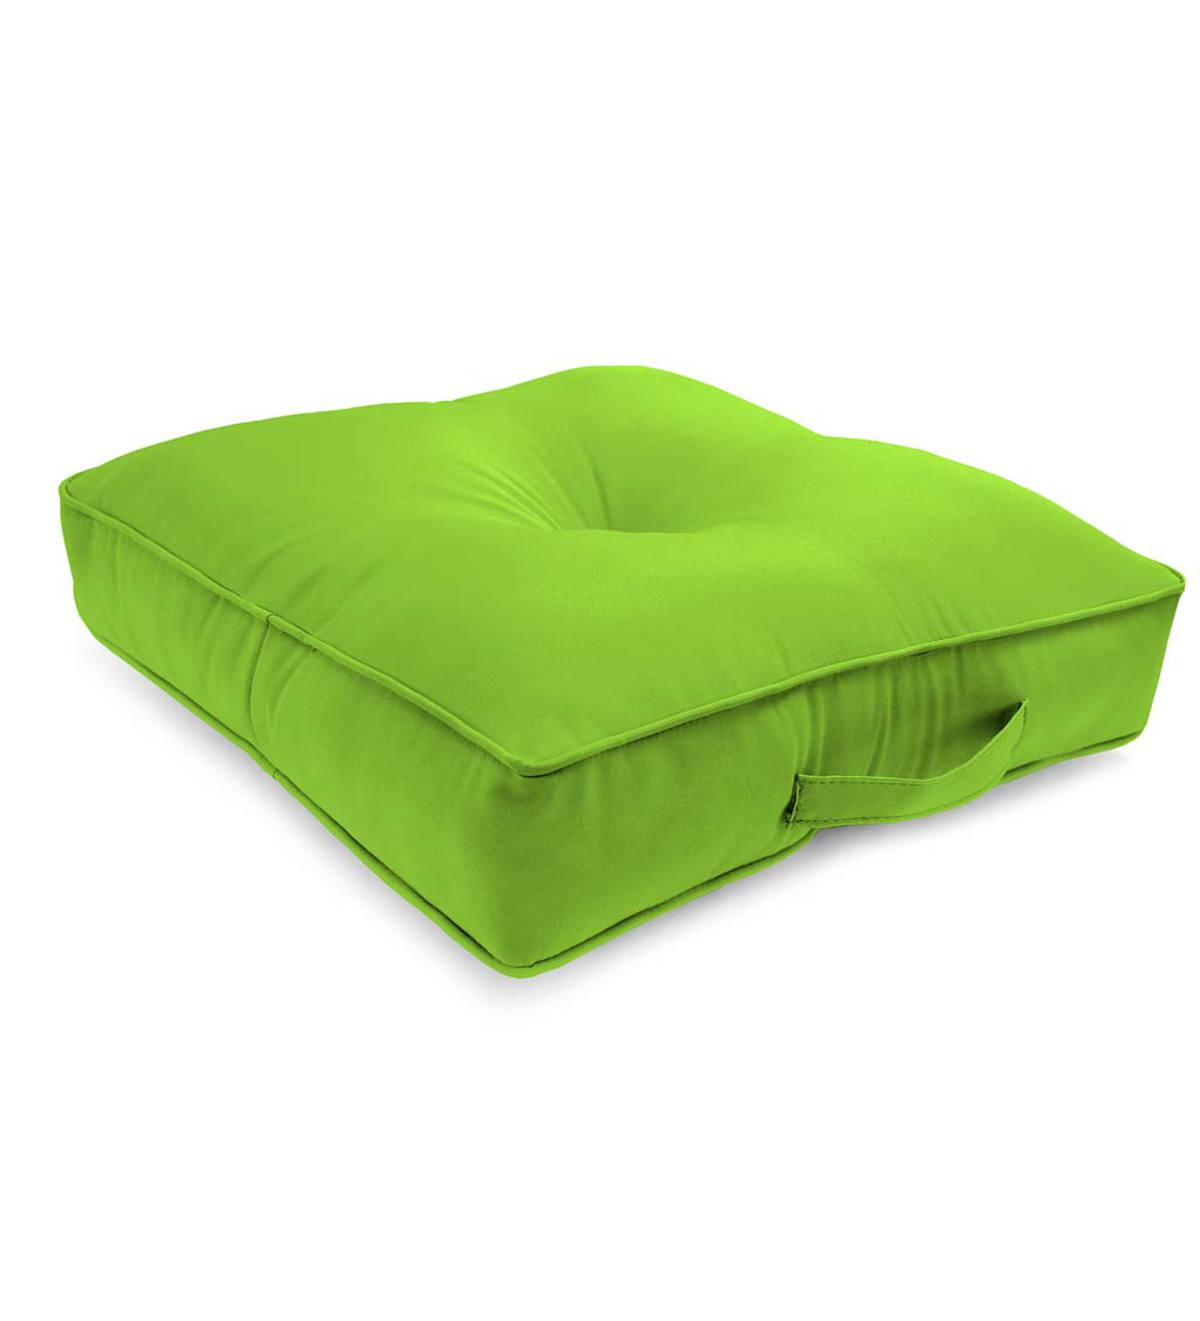 "Polyester Classic Tufted Floor Cushion With Handle, 20"" sq. x 4"""